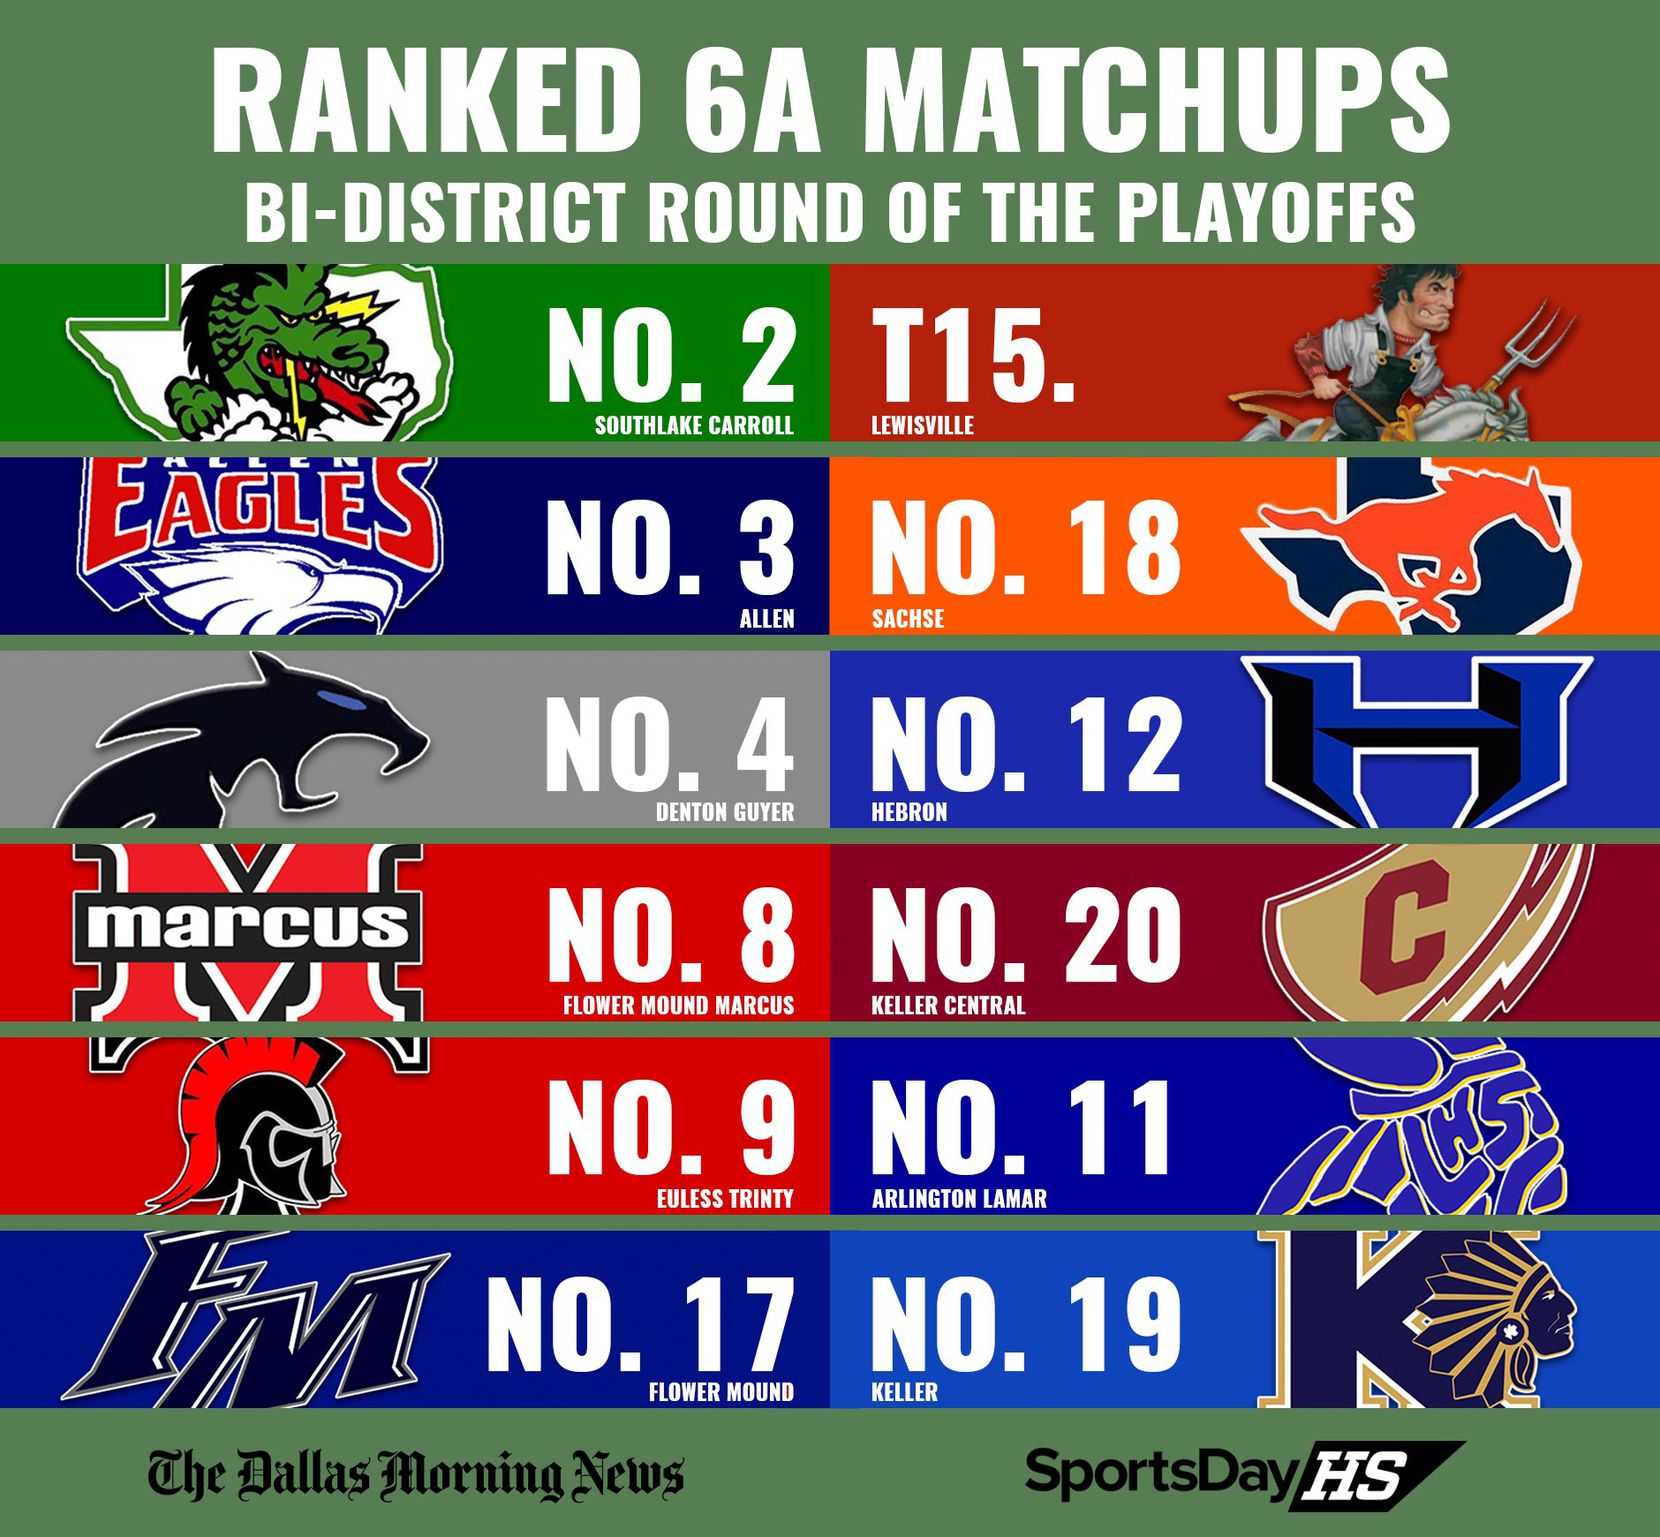 Ranked 6A matchups in the bi-district round of the playoffs.